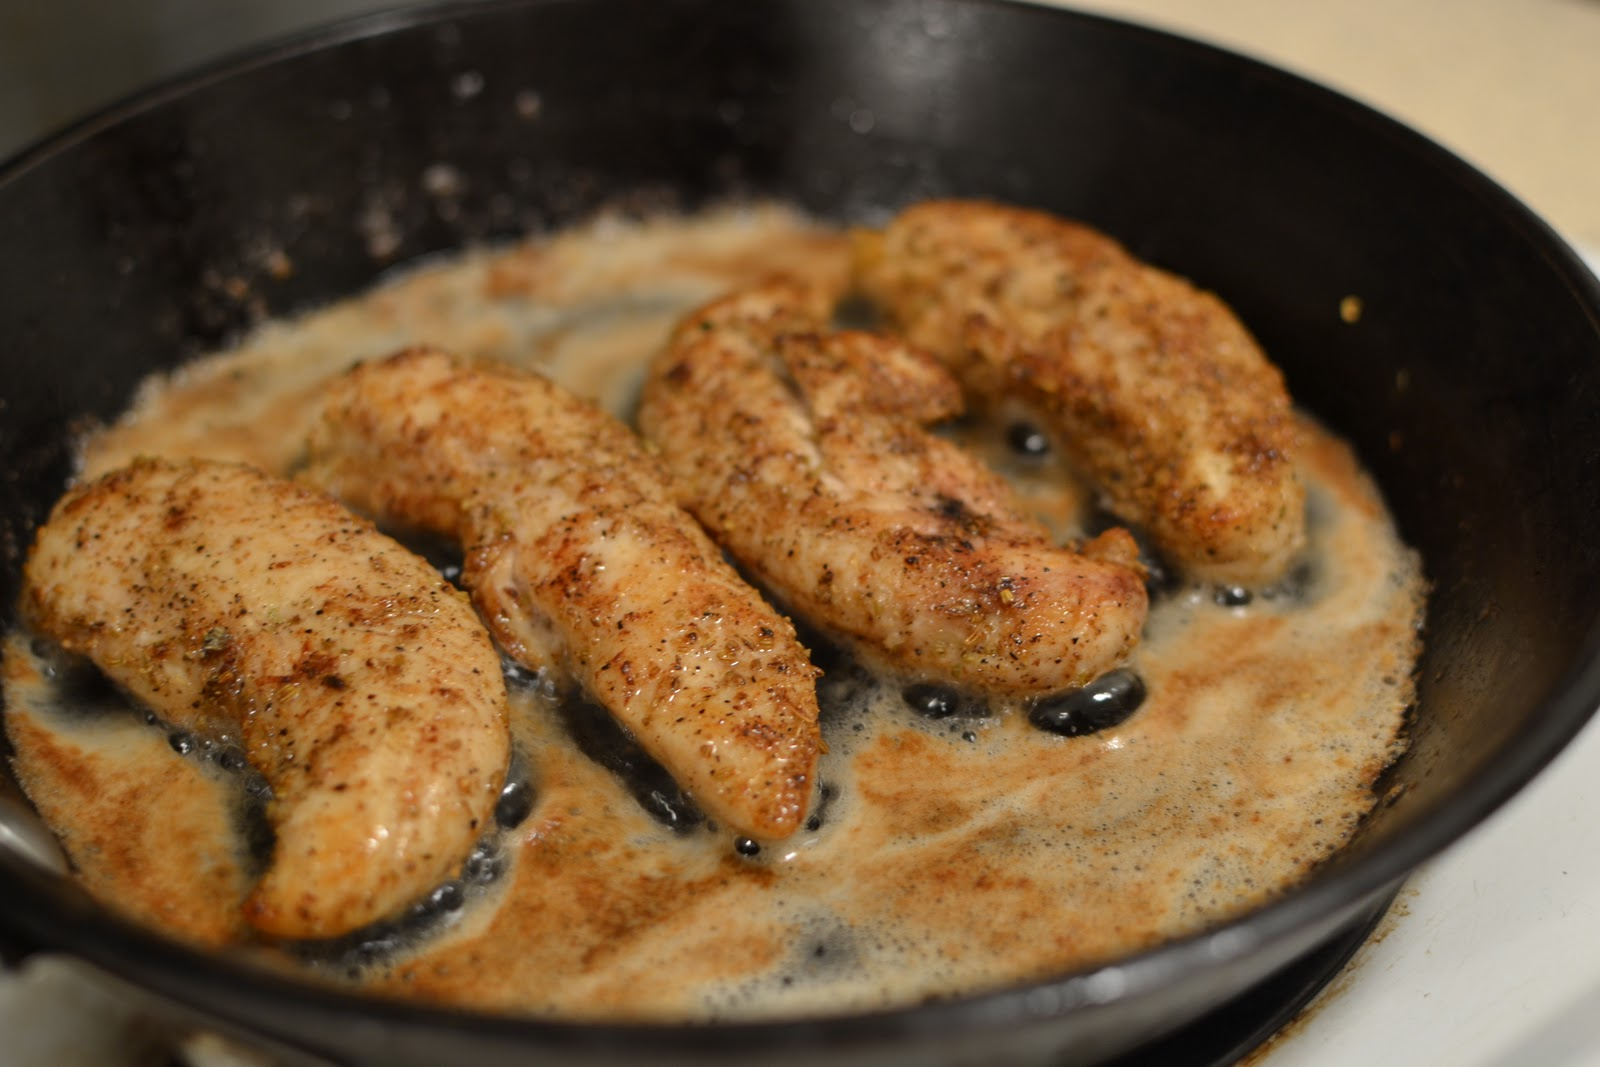 to go with this fennel-crusted chicken with brown butter and capers ...